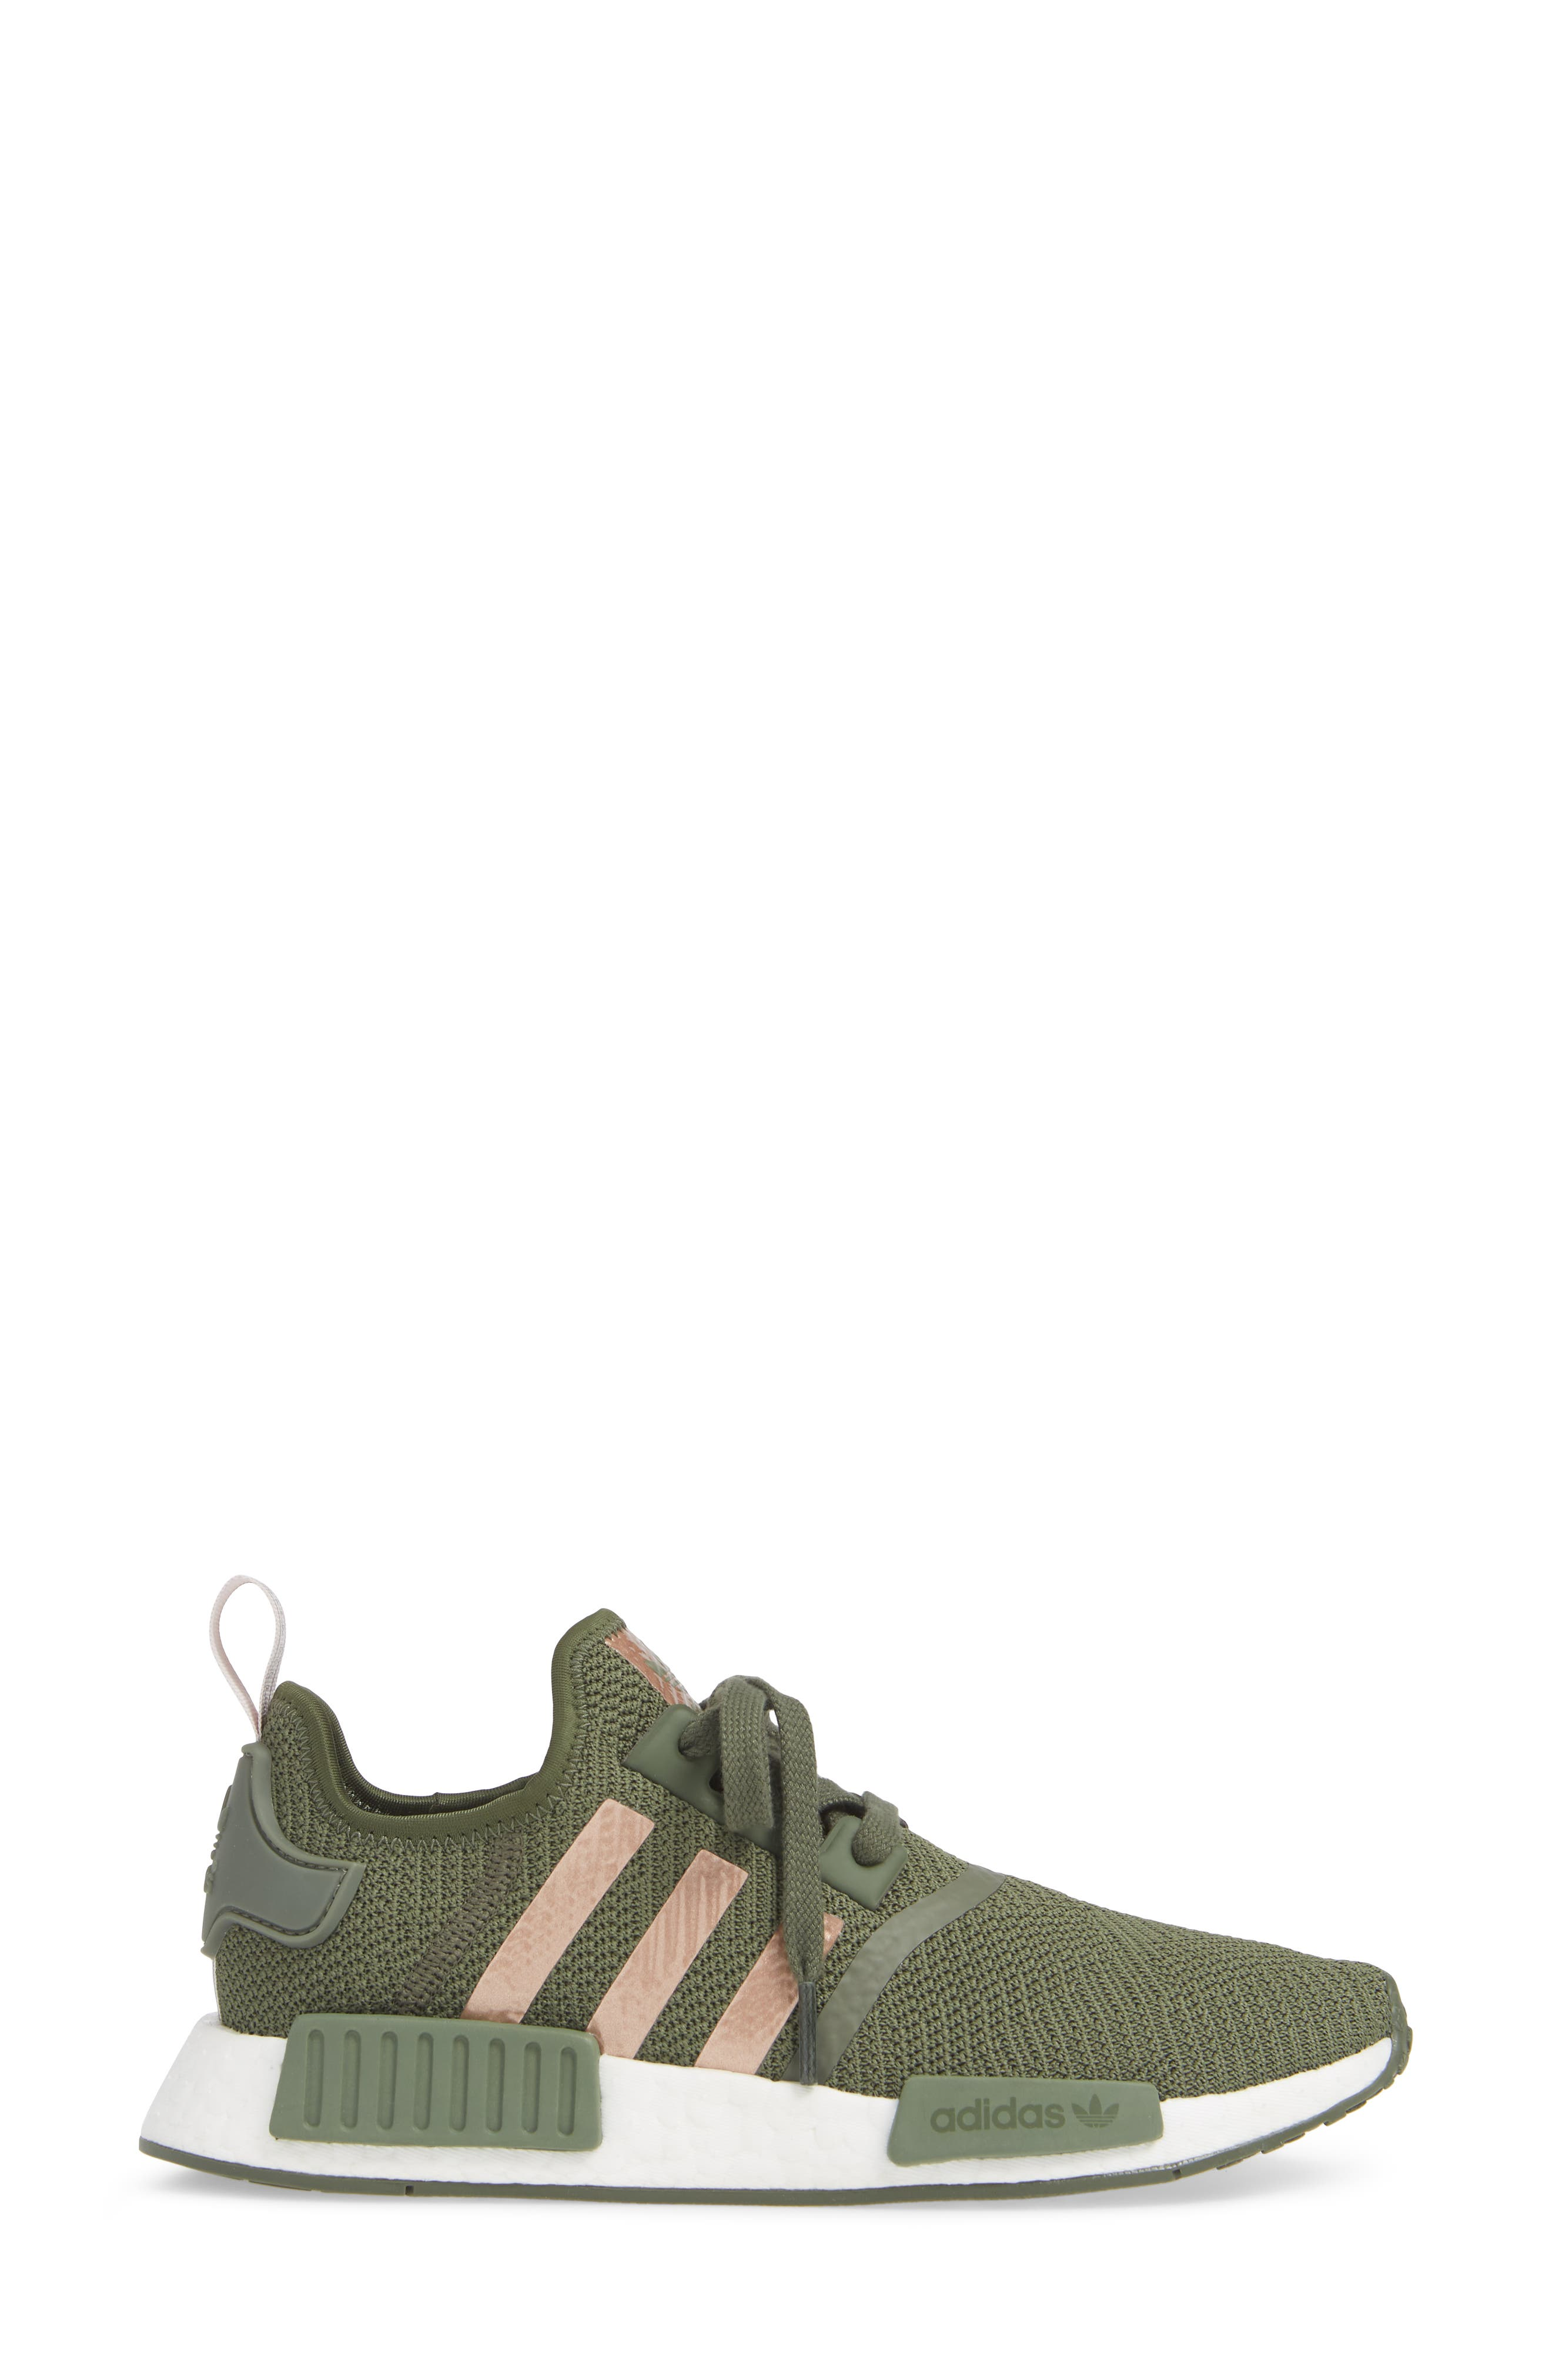 NMD R1 Athletic Shoe,                             Alternate thumbnail 3, color,                             BASE GREEN/ SUPER POP